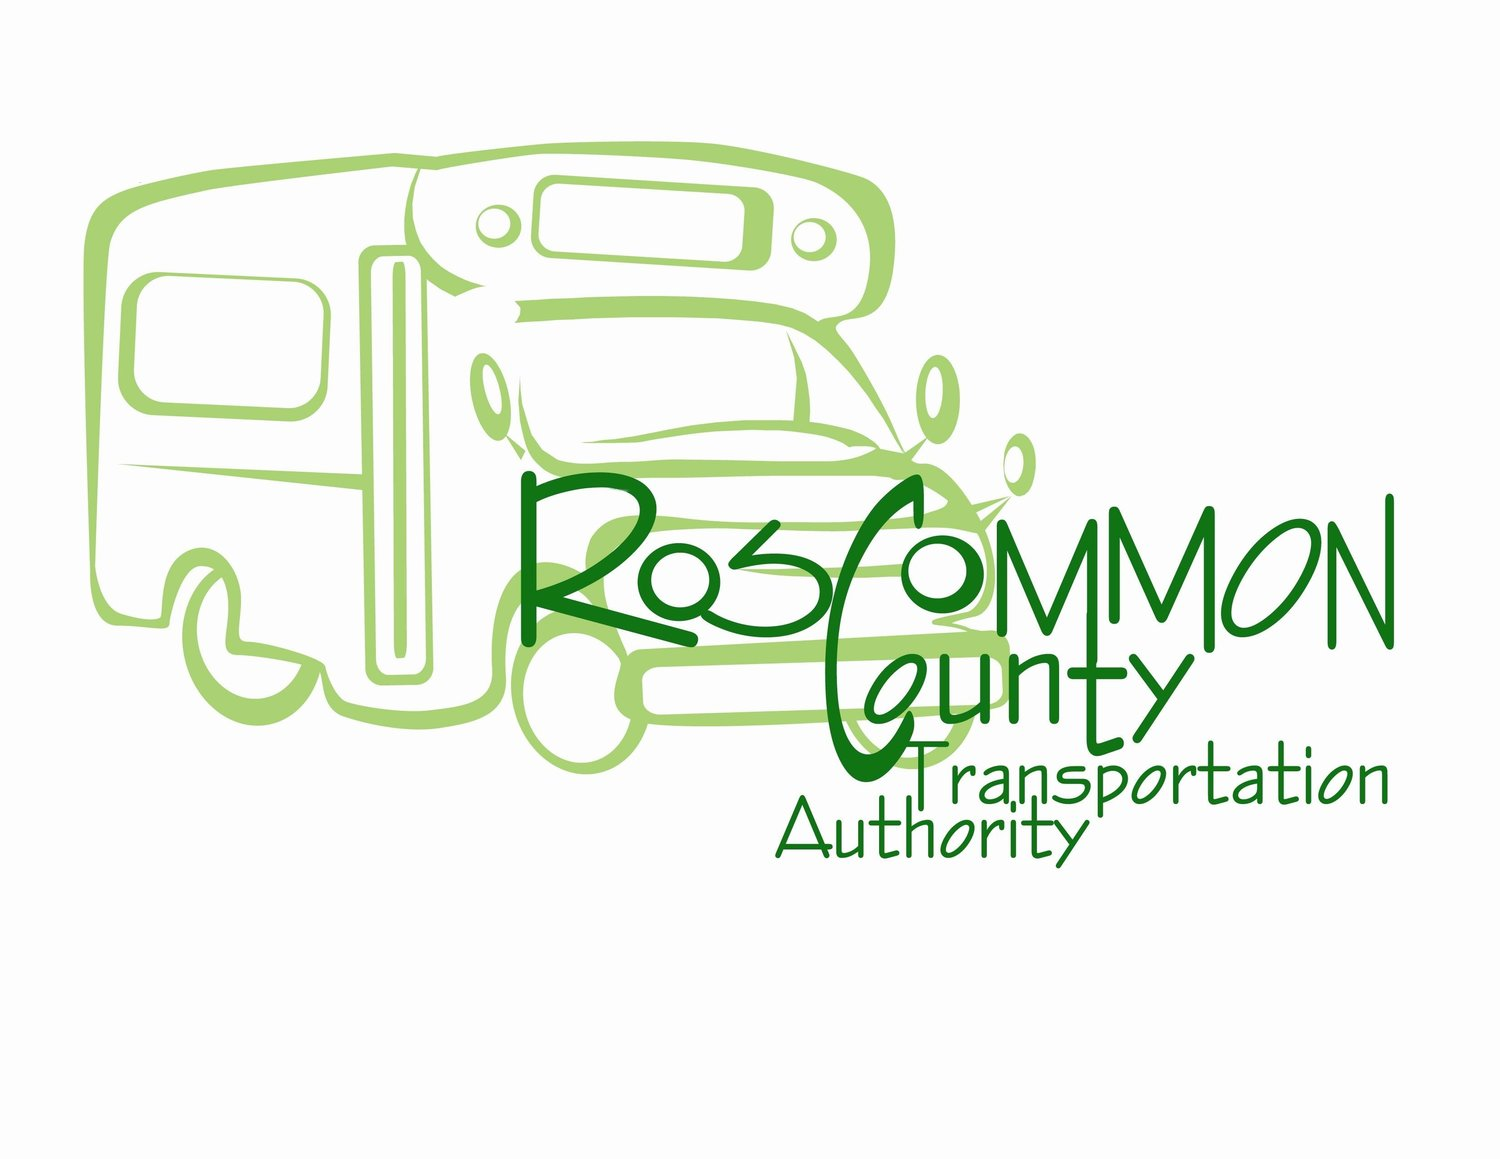 Roscommon County Transit Authority